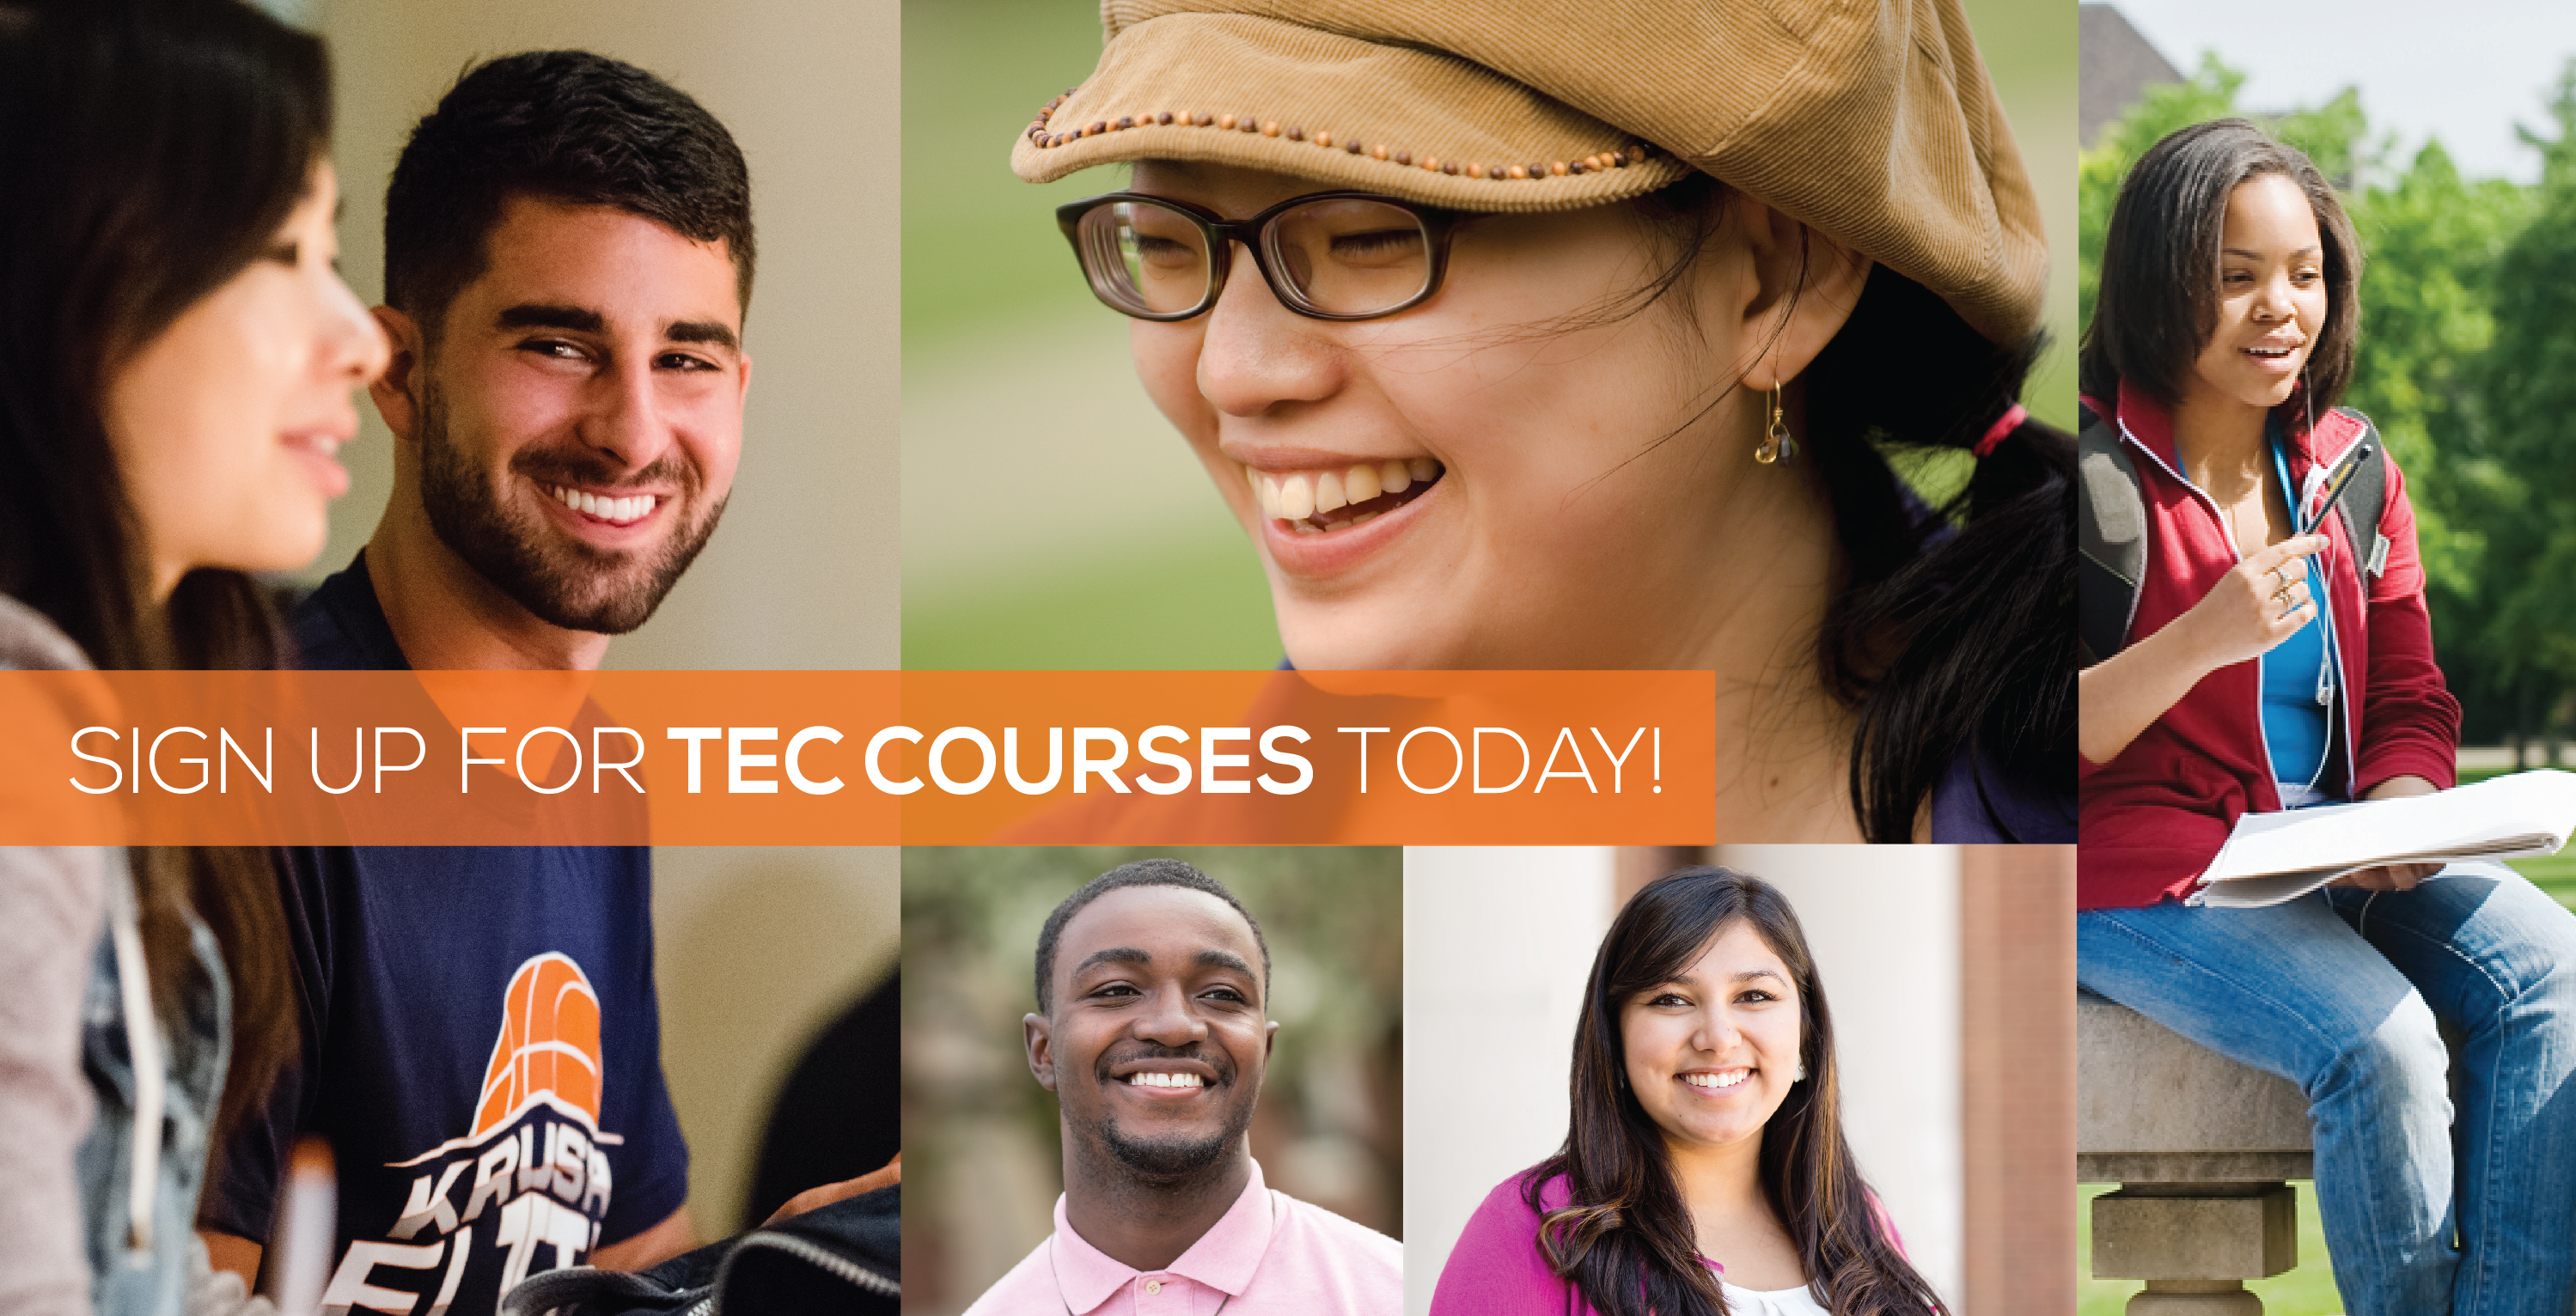 Sign up for TEC Courses!